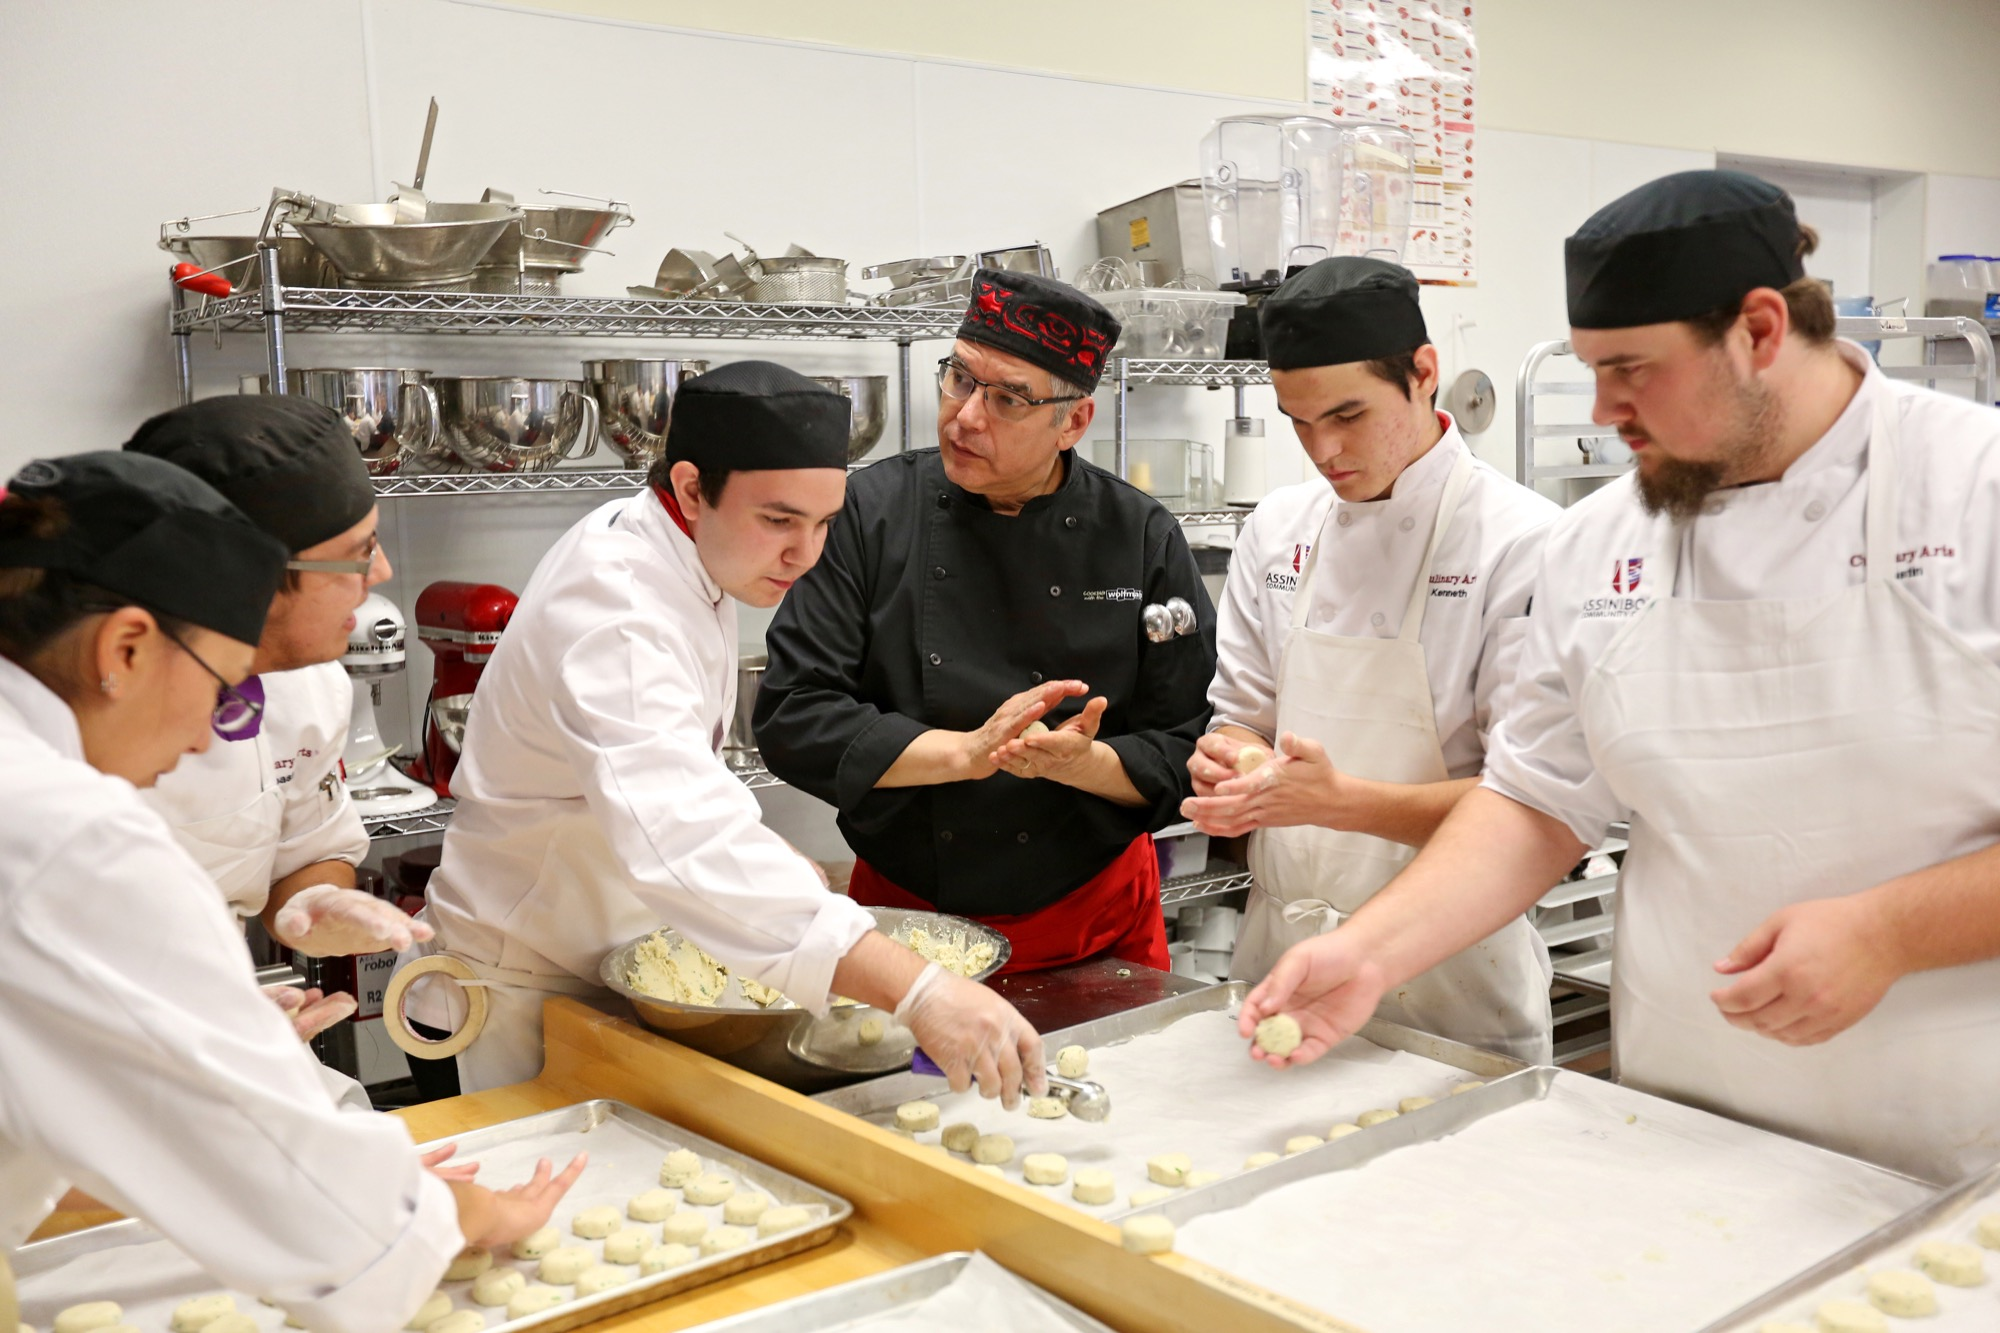 Internationally renowned chef David Wolfman works with Manitoba Institute of Culinary Arts students at Assiniboine Community College's North Hill campus on Wednesday, teaching them Indigenous cooking skills.